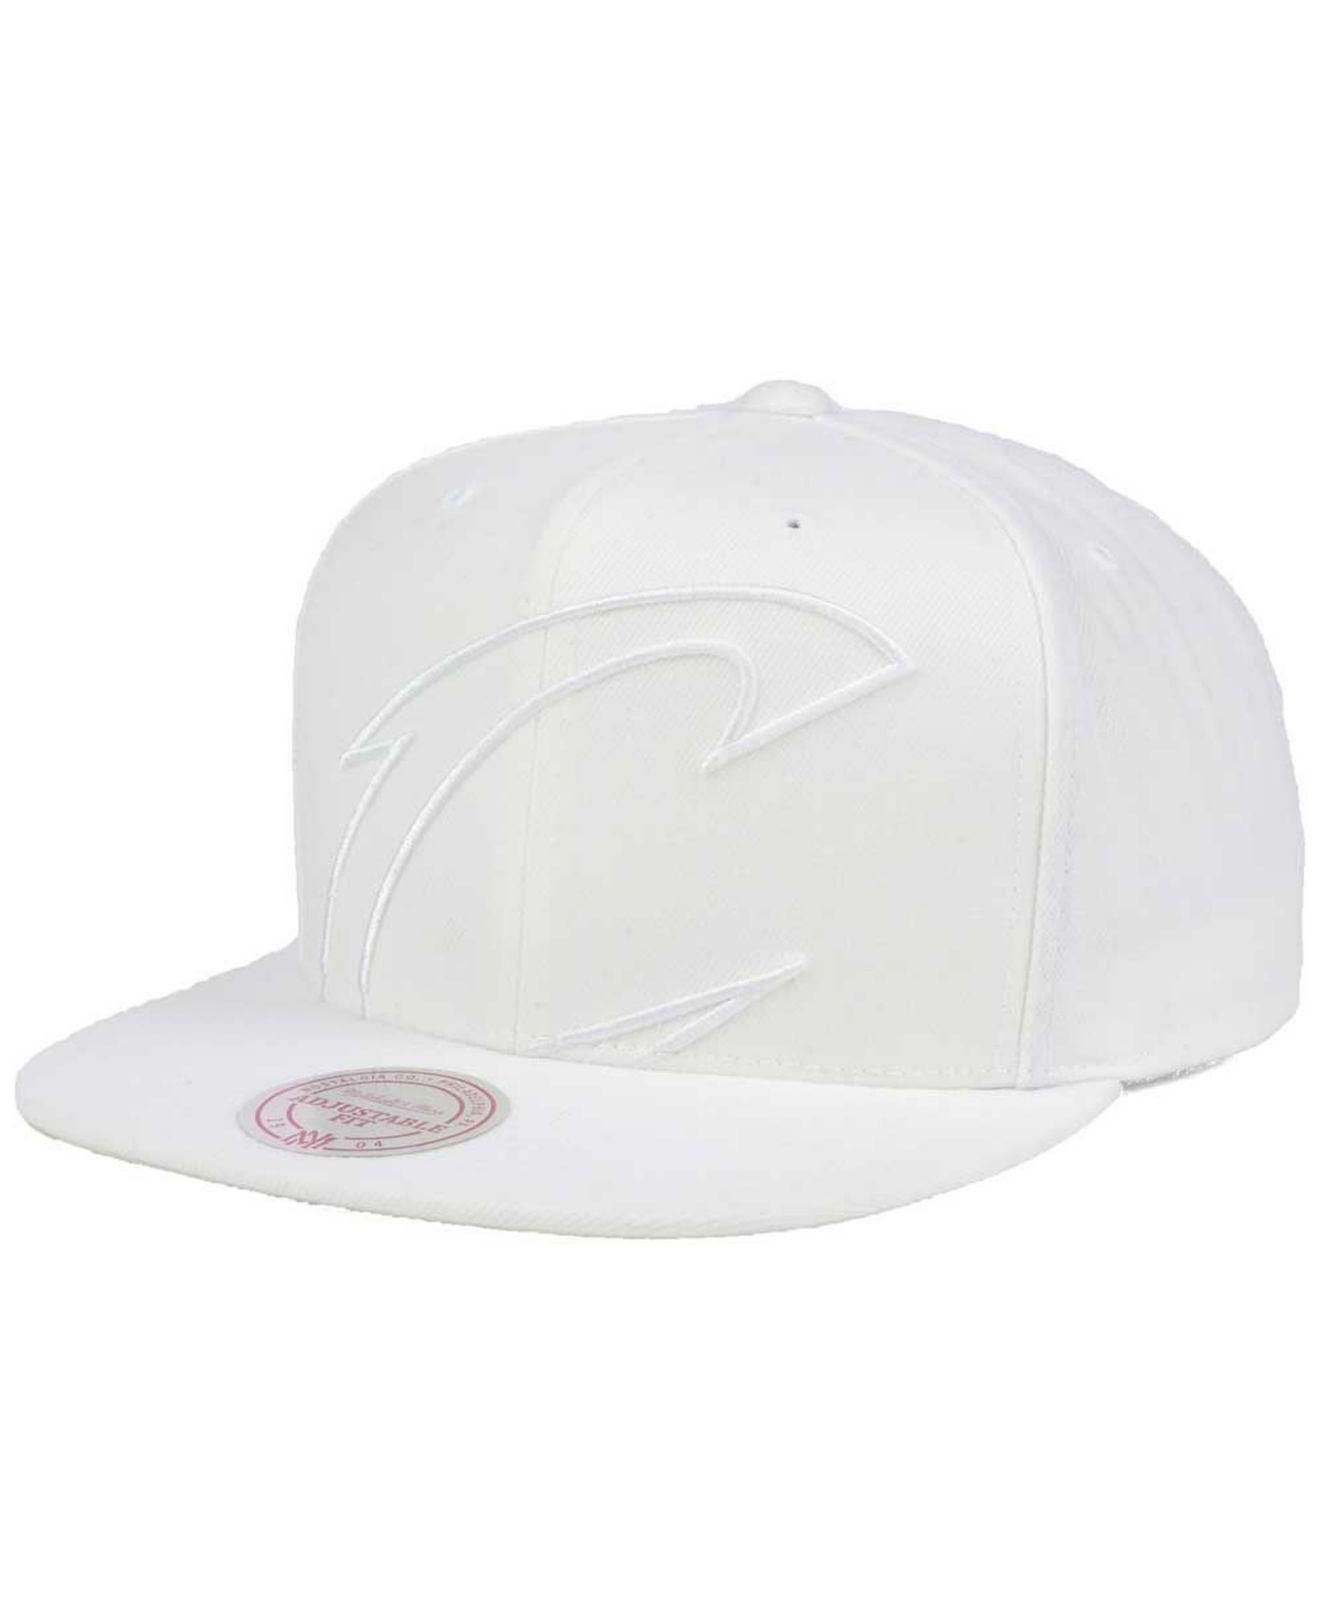 online store 74614 35e02 new arrivals mitchell ness. mens white cleveland cavaliers cropped xl logo  snapback cap 926ba b918d